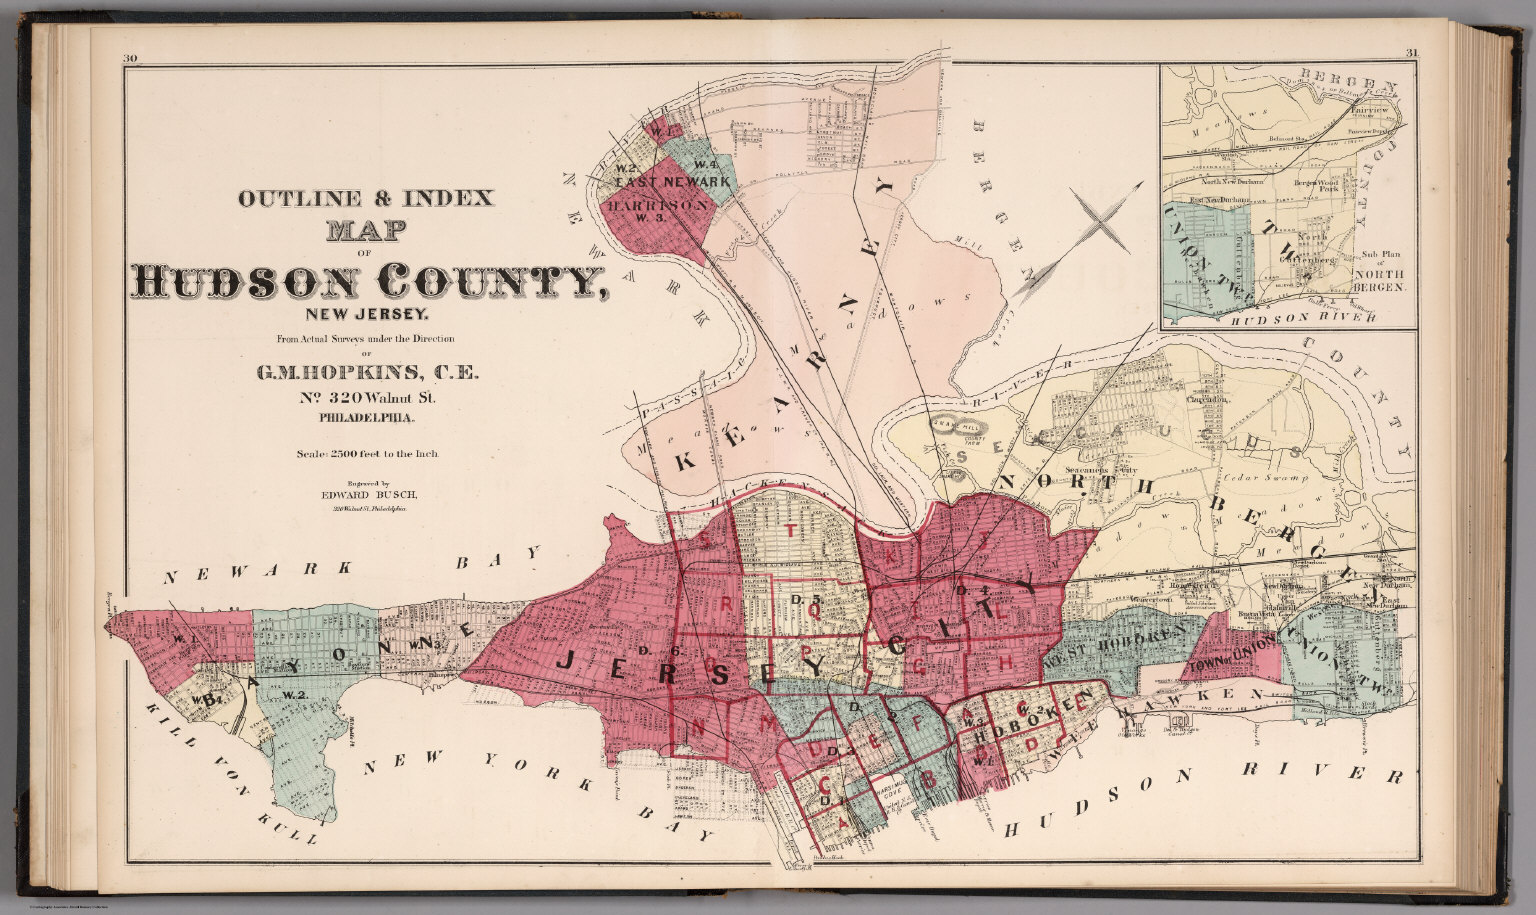 Outline and Index Map Hudson County, New Jersey. - David Rumsey ...